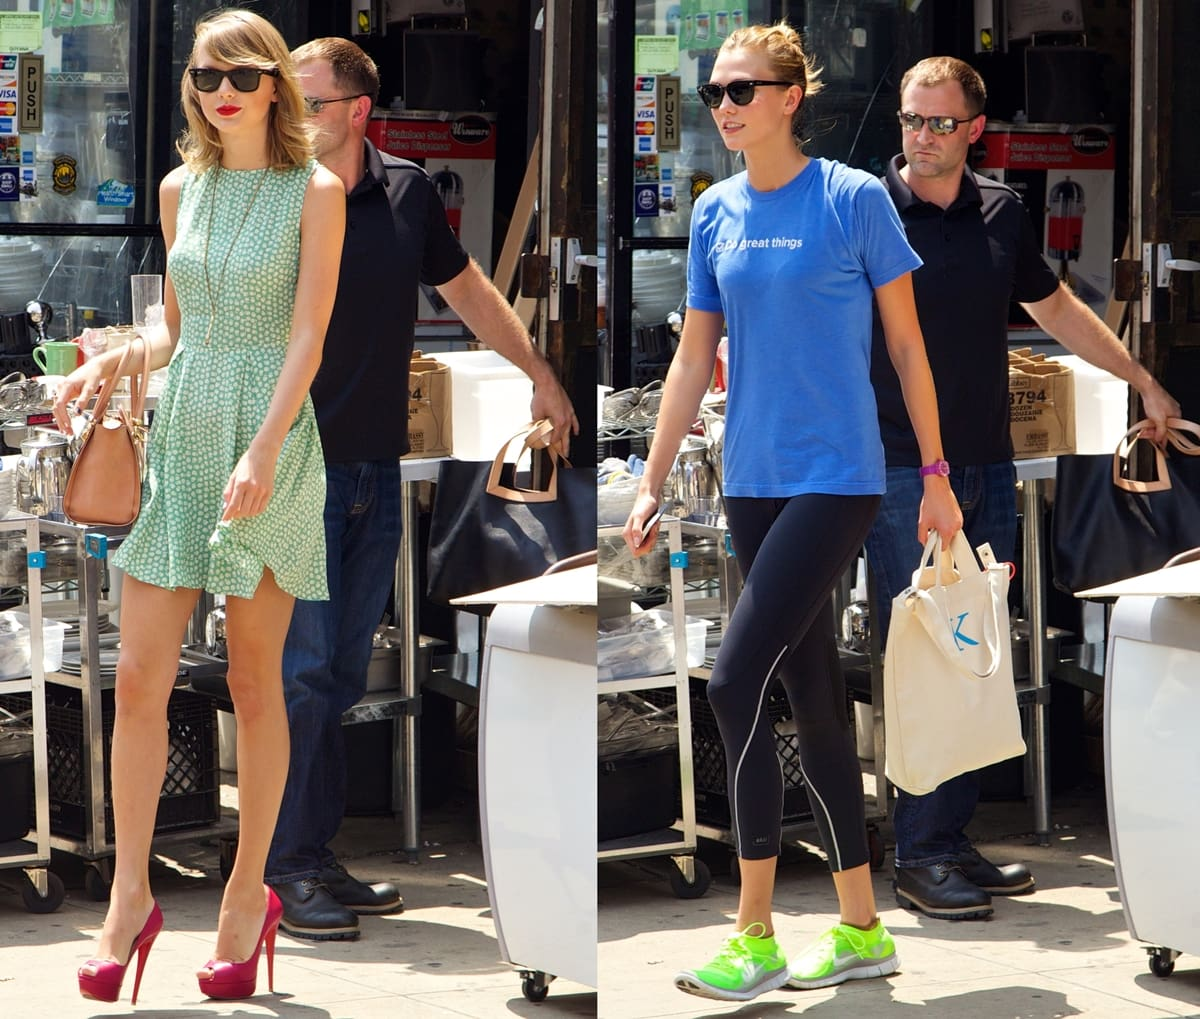 After meeting at the 2013 Victoria's Secret Fashion Show, Taylor Swift and Karlie Kloss became best friends